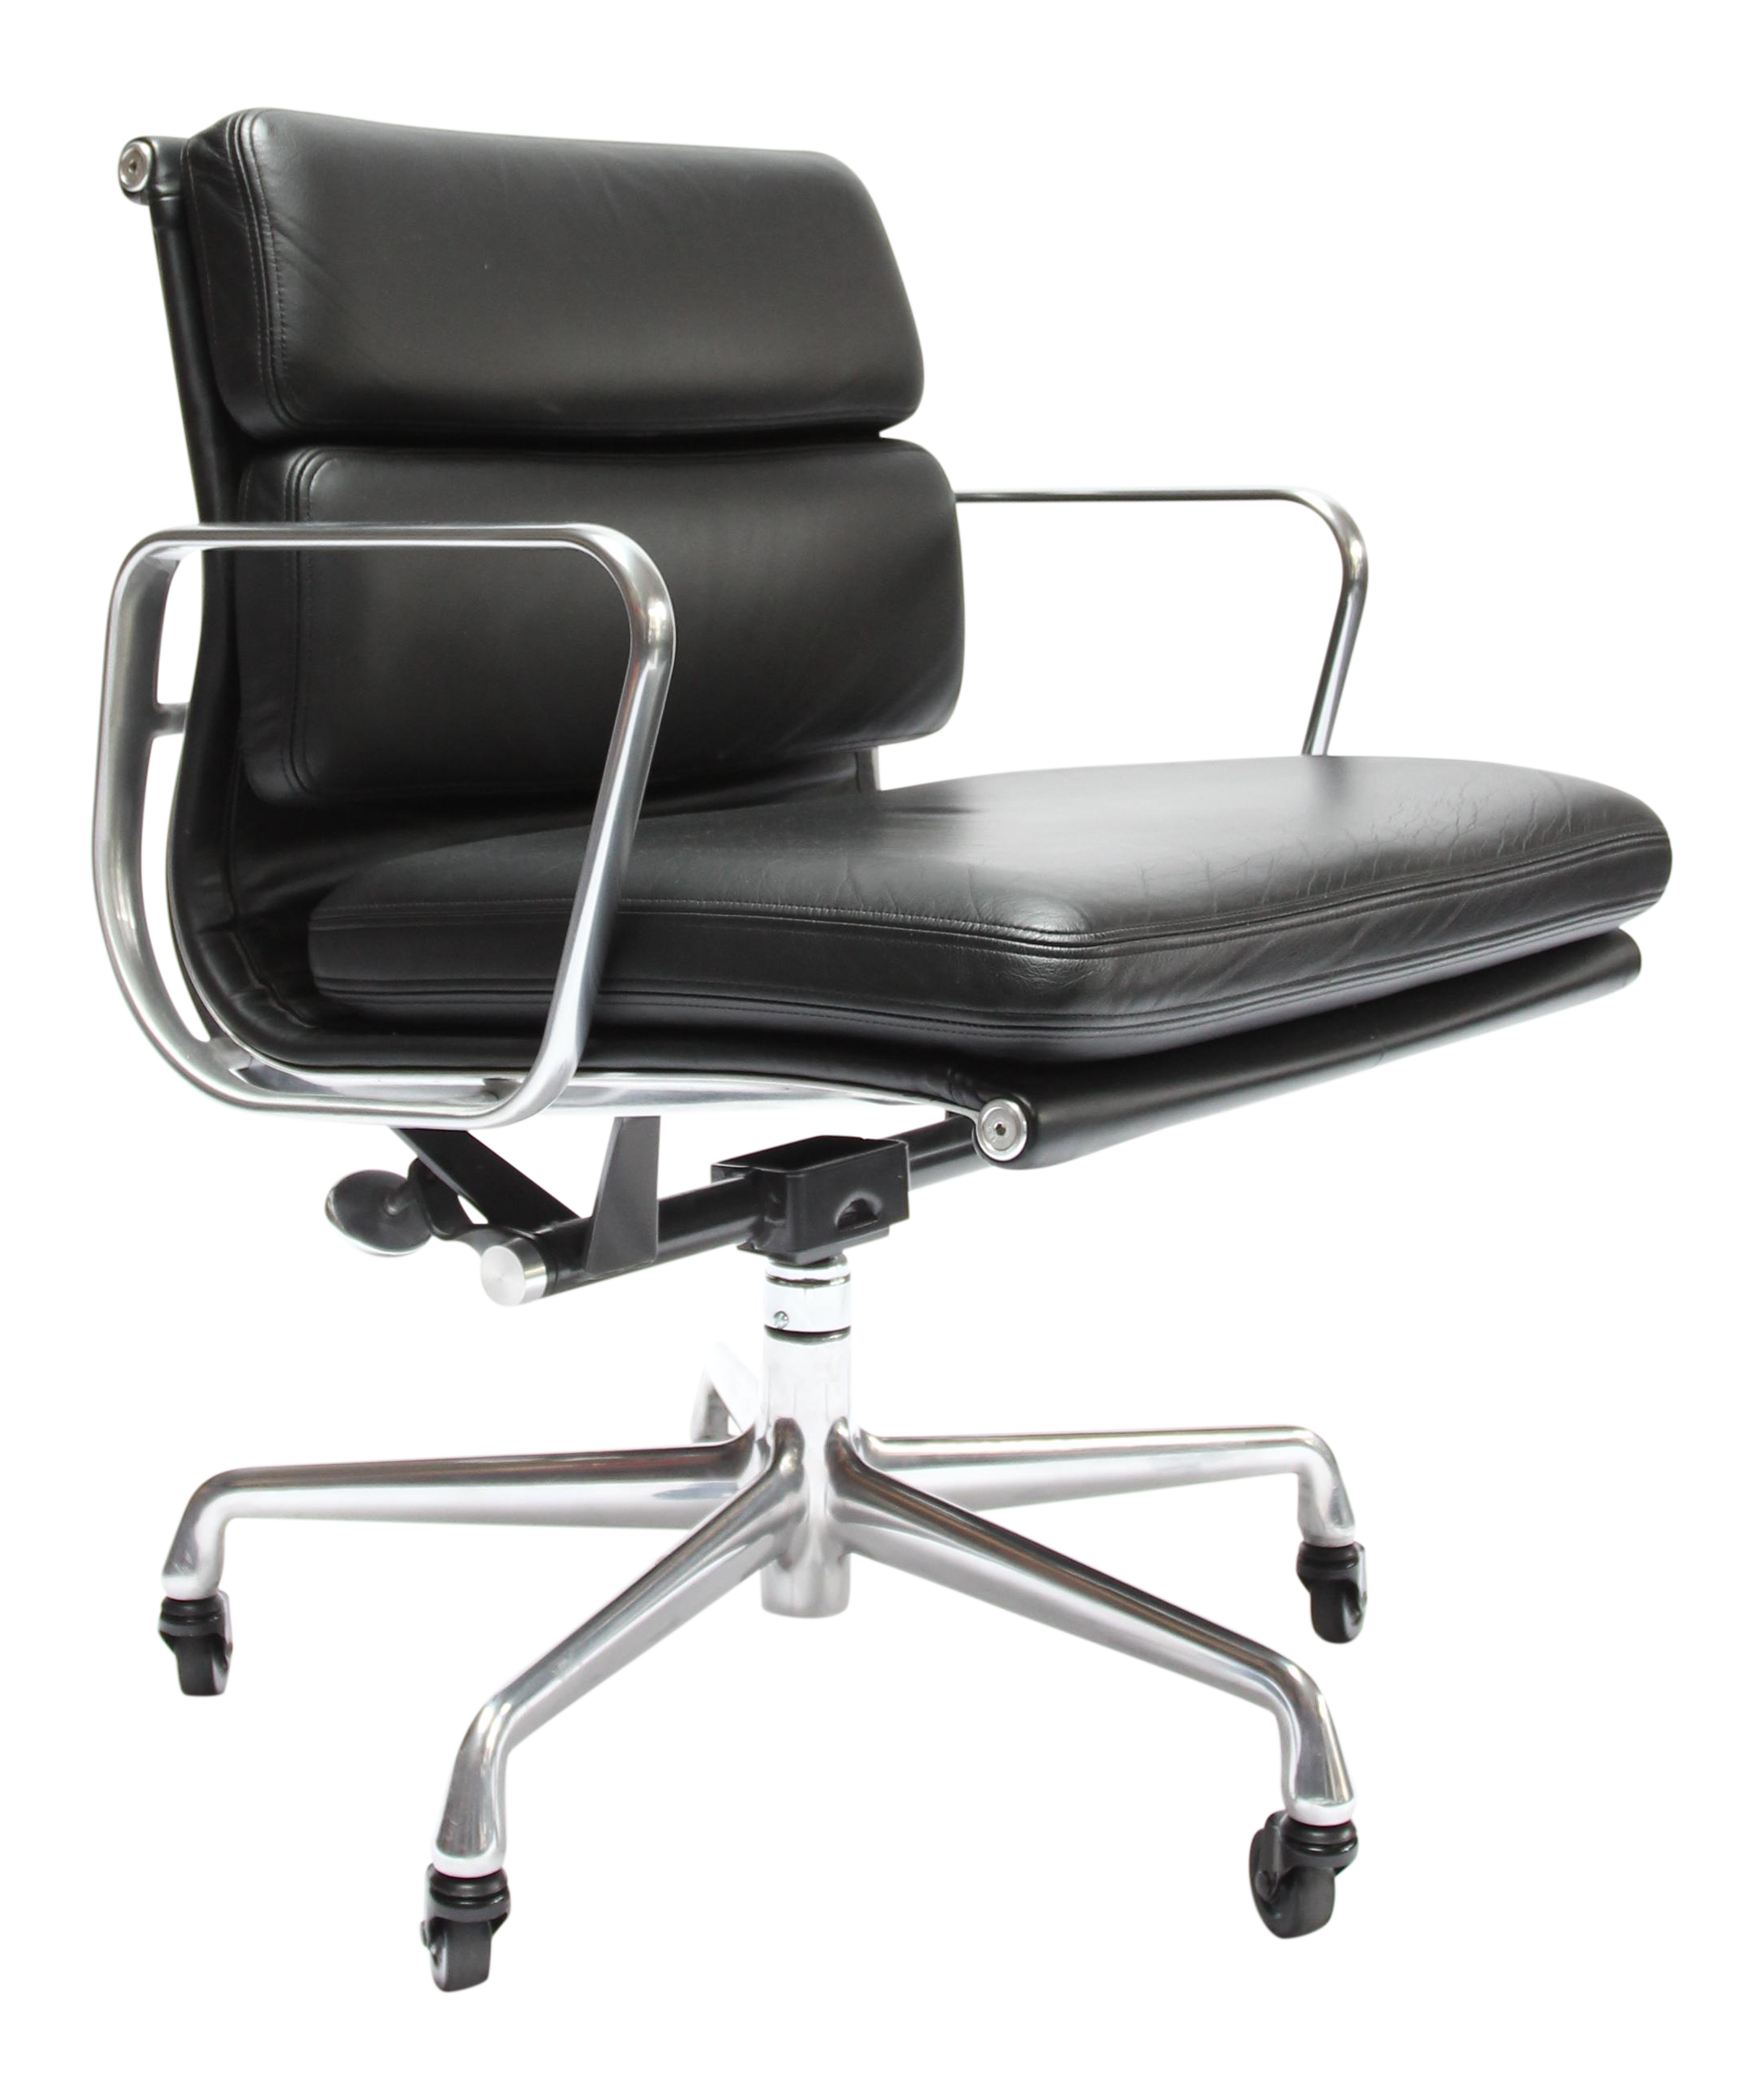 Shop 500 Used Vintage Office Chairs at Chairishcom